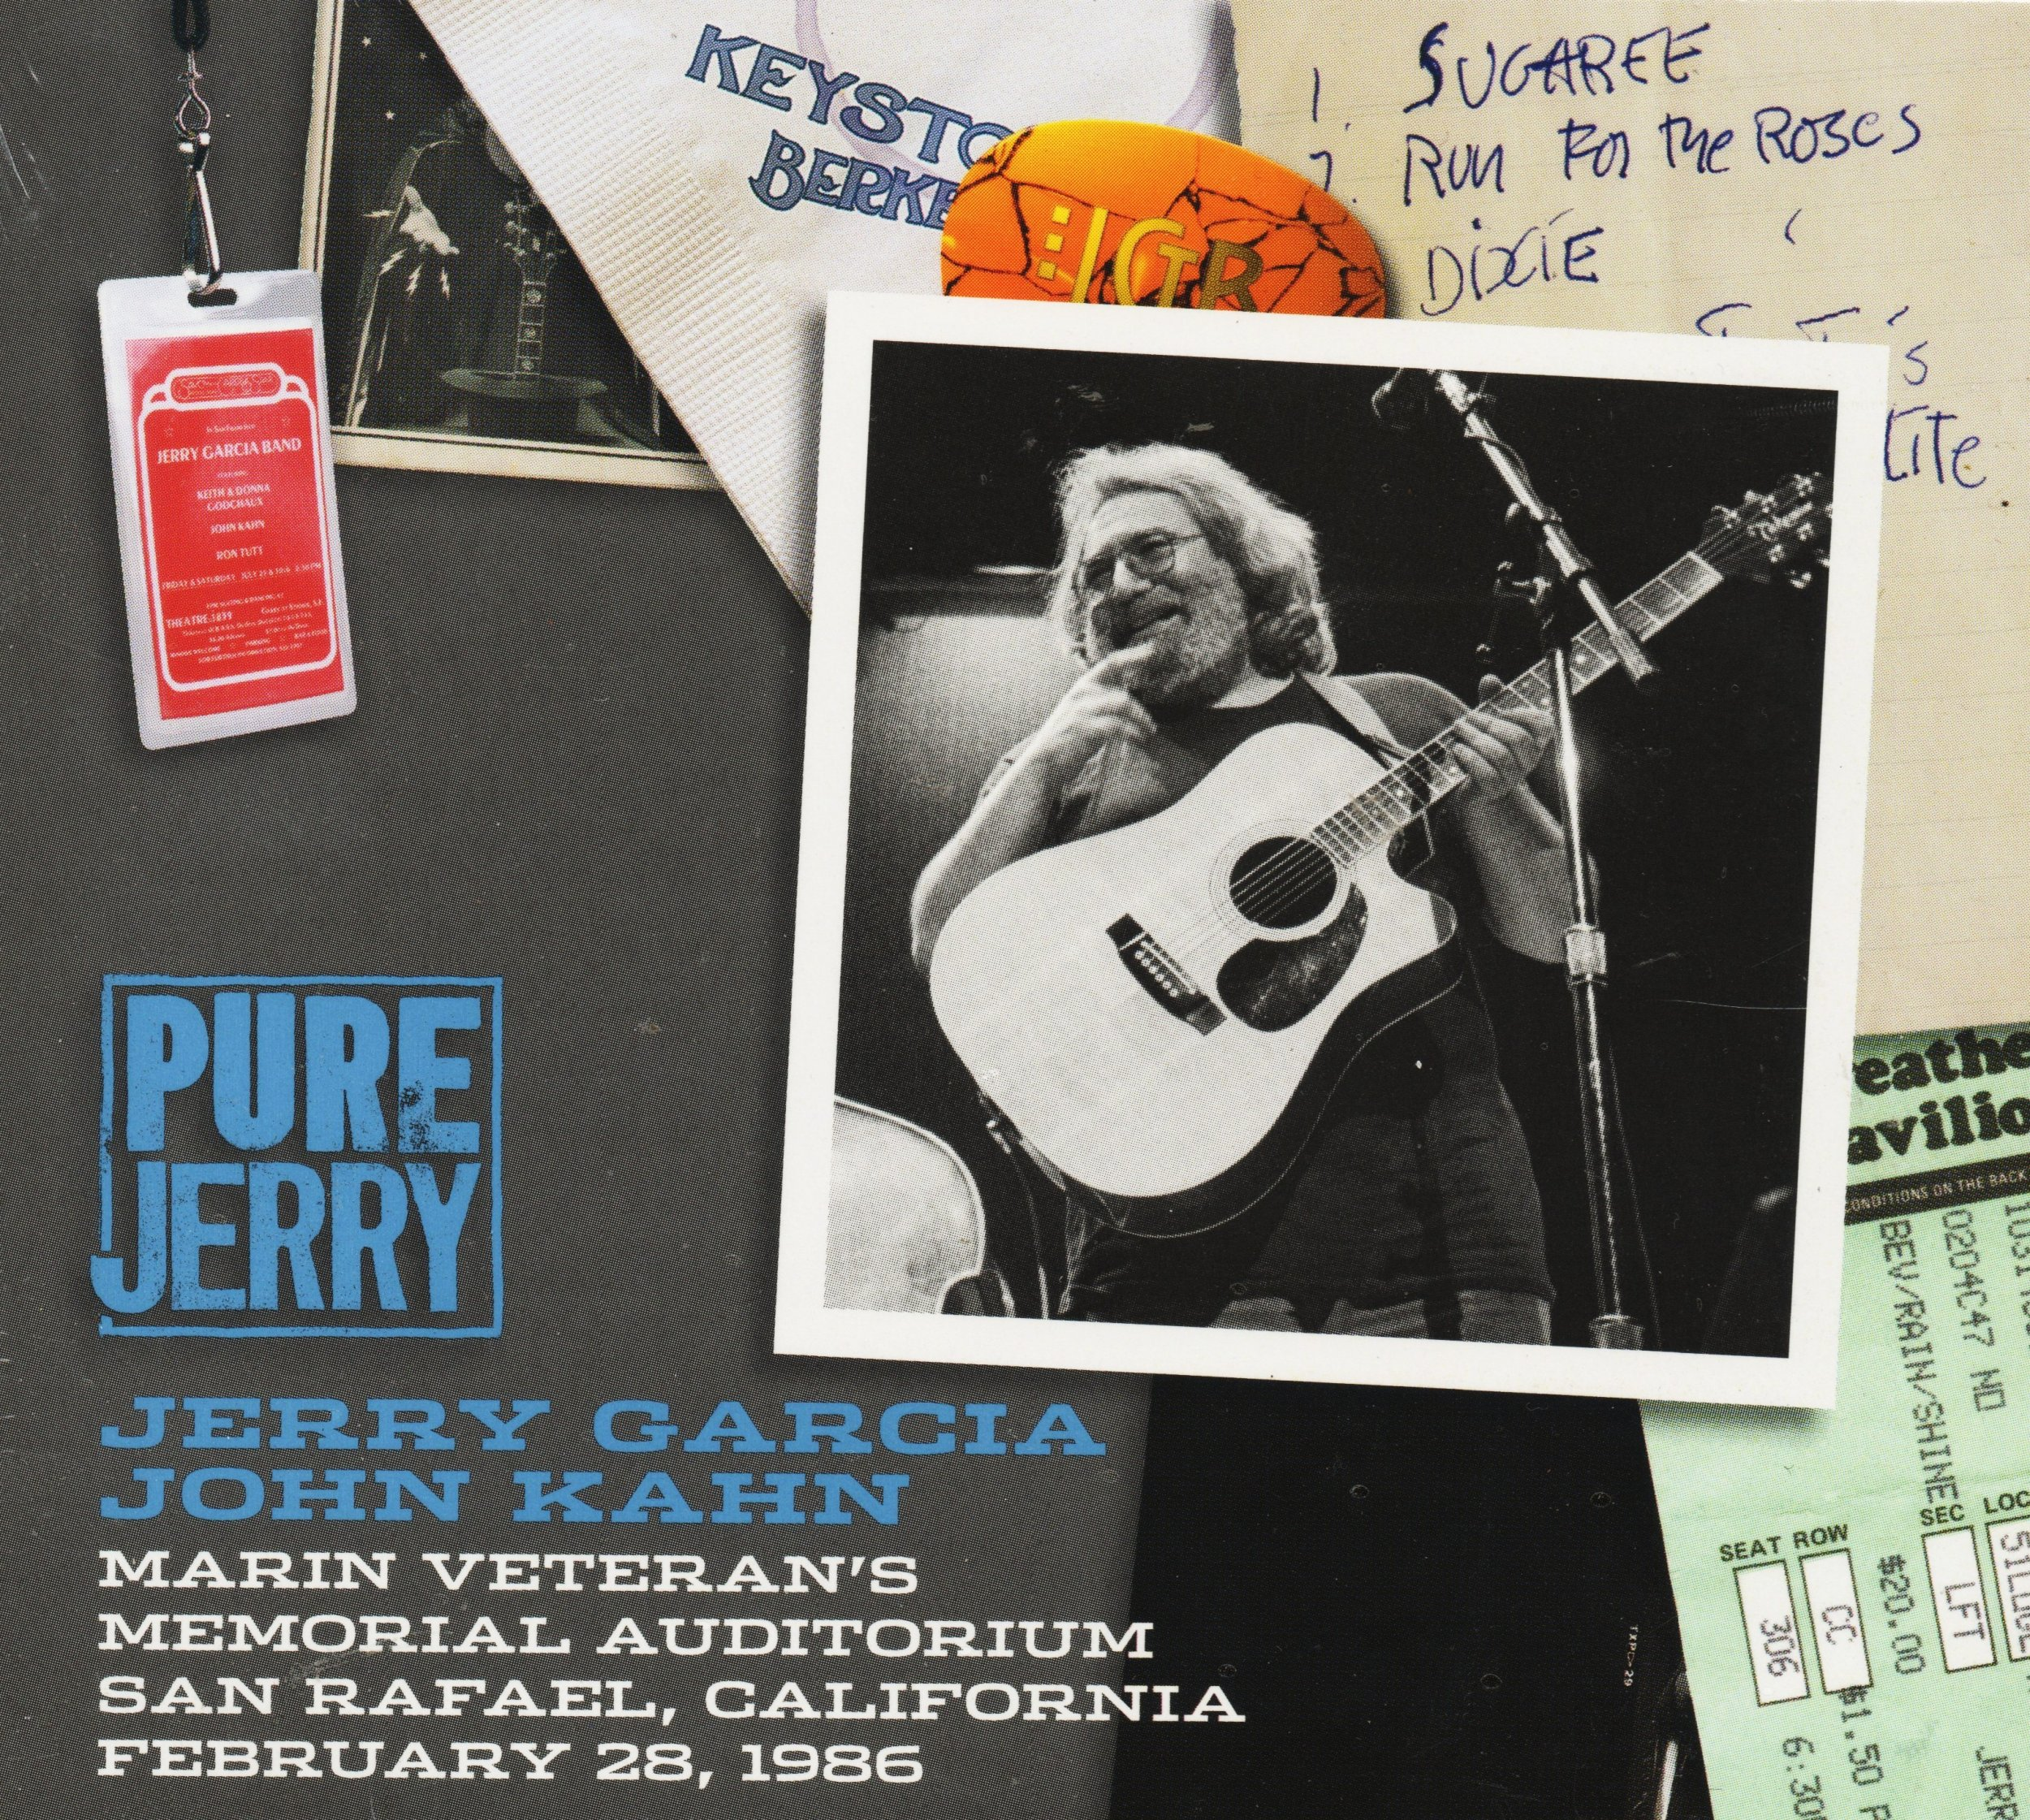 Pure Jerry: Marin Veteran's Auditorium, San Rafael, California - February 28, 1986 by Jerry Garcia Family